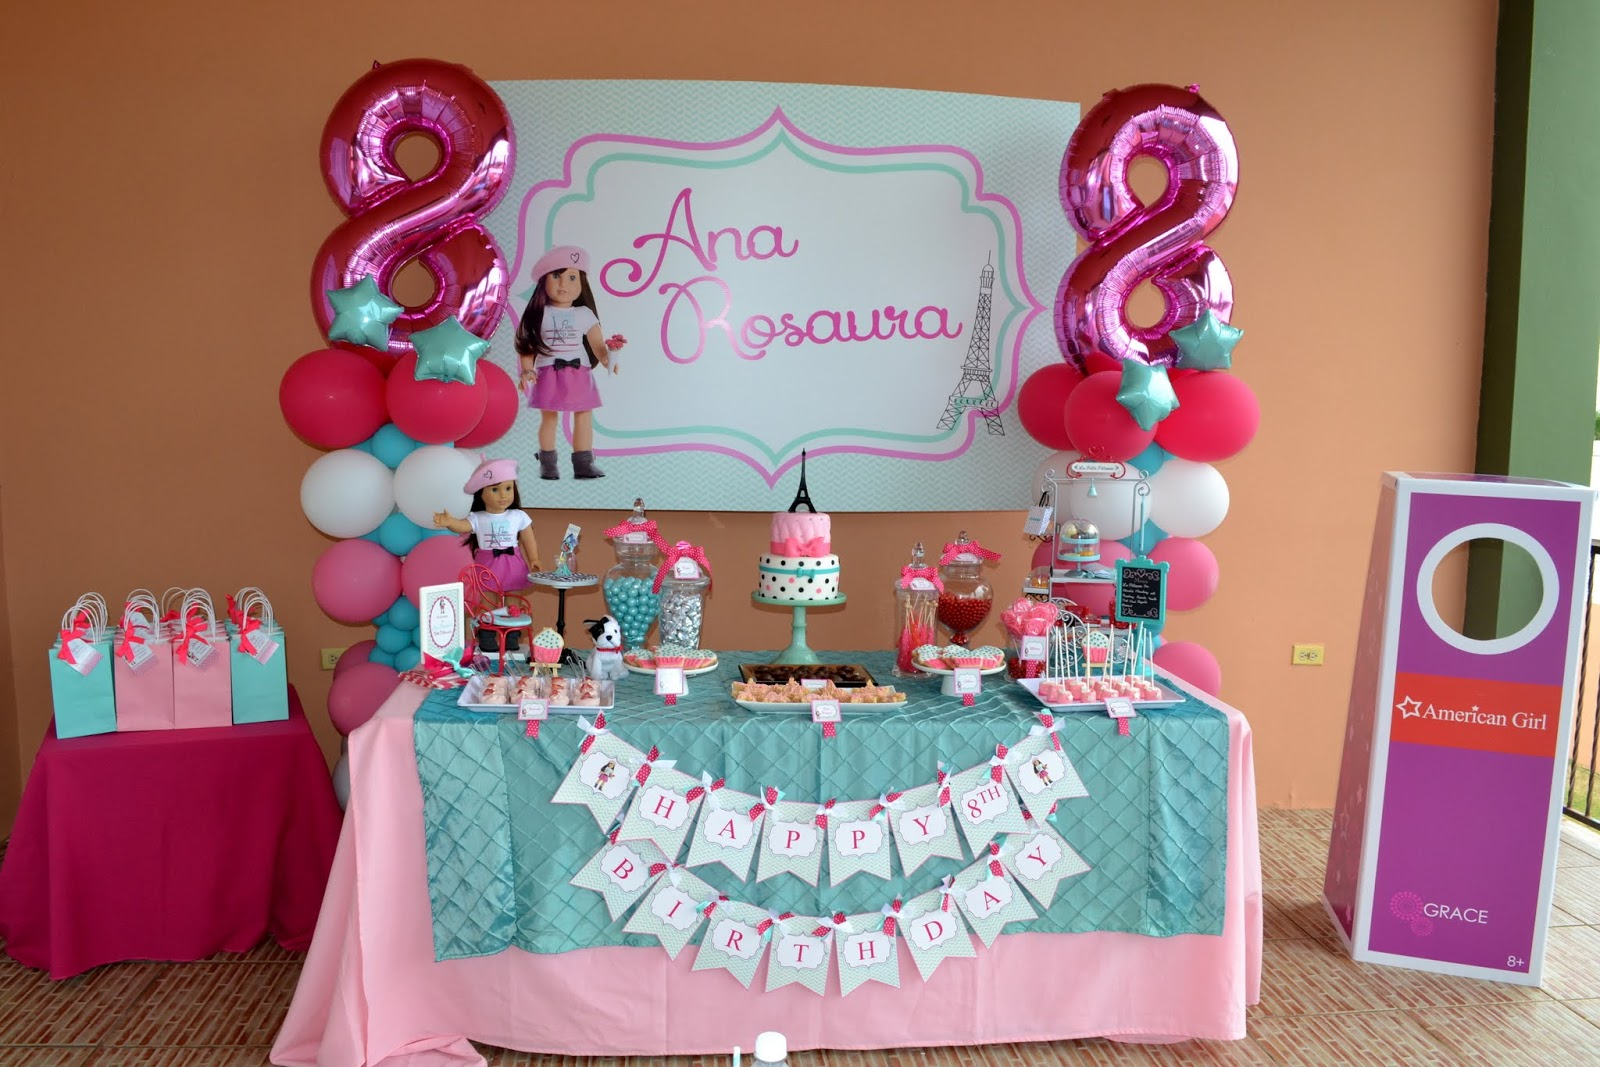 American Doll Party Decorations Unique Birthday Party Ideas And Themes